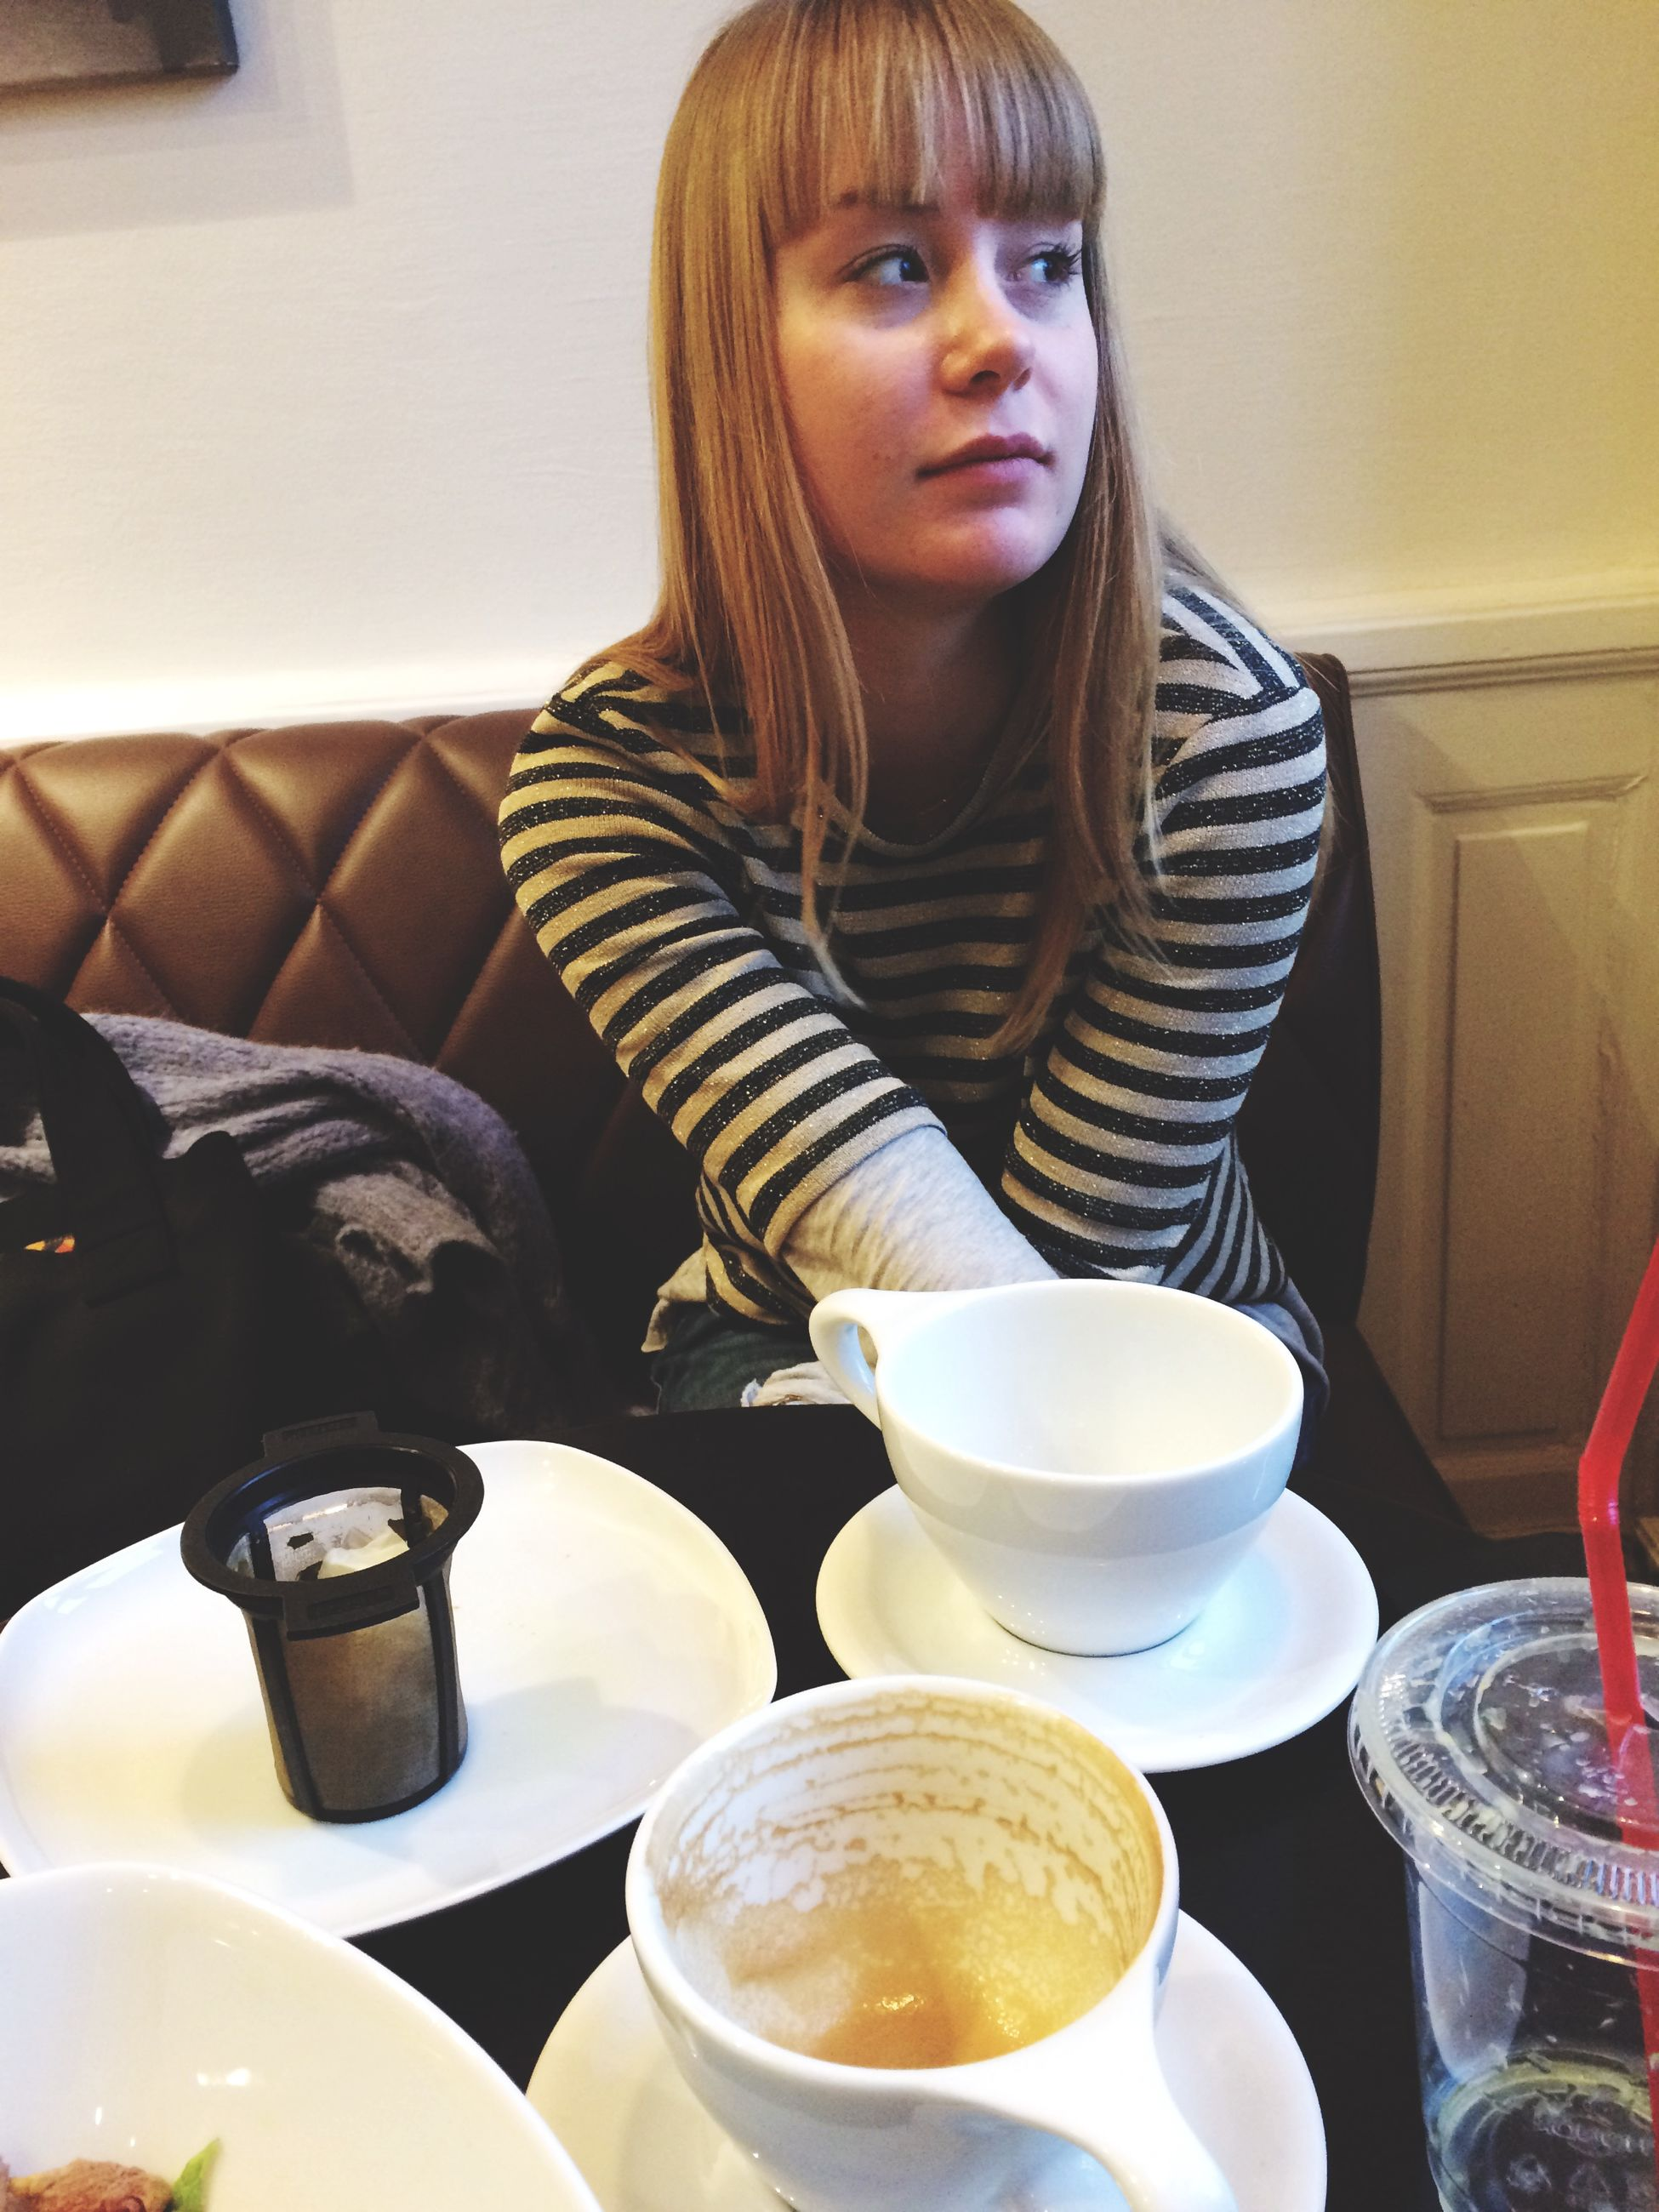 indoors, food and drink, lifestyles, young adult, drink, leisure activity, young women, refreshment, casual clothing, front view, coffee cup, table, sitting, portrait, looking at camera, person, standing, food